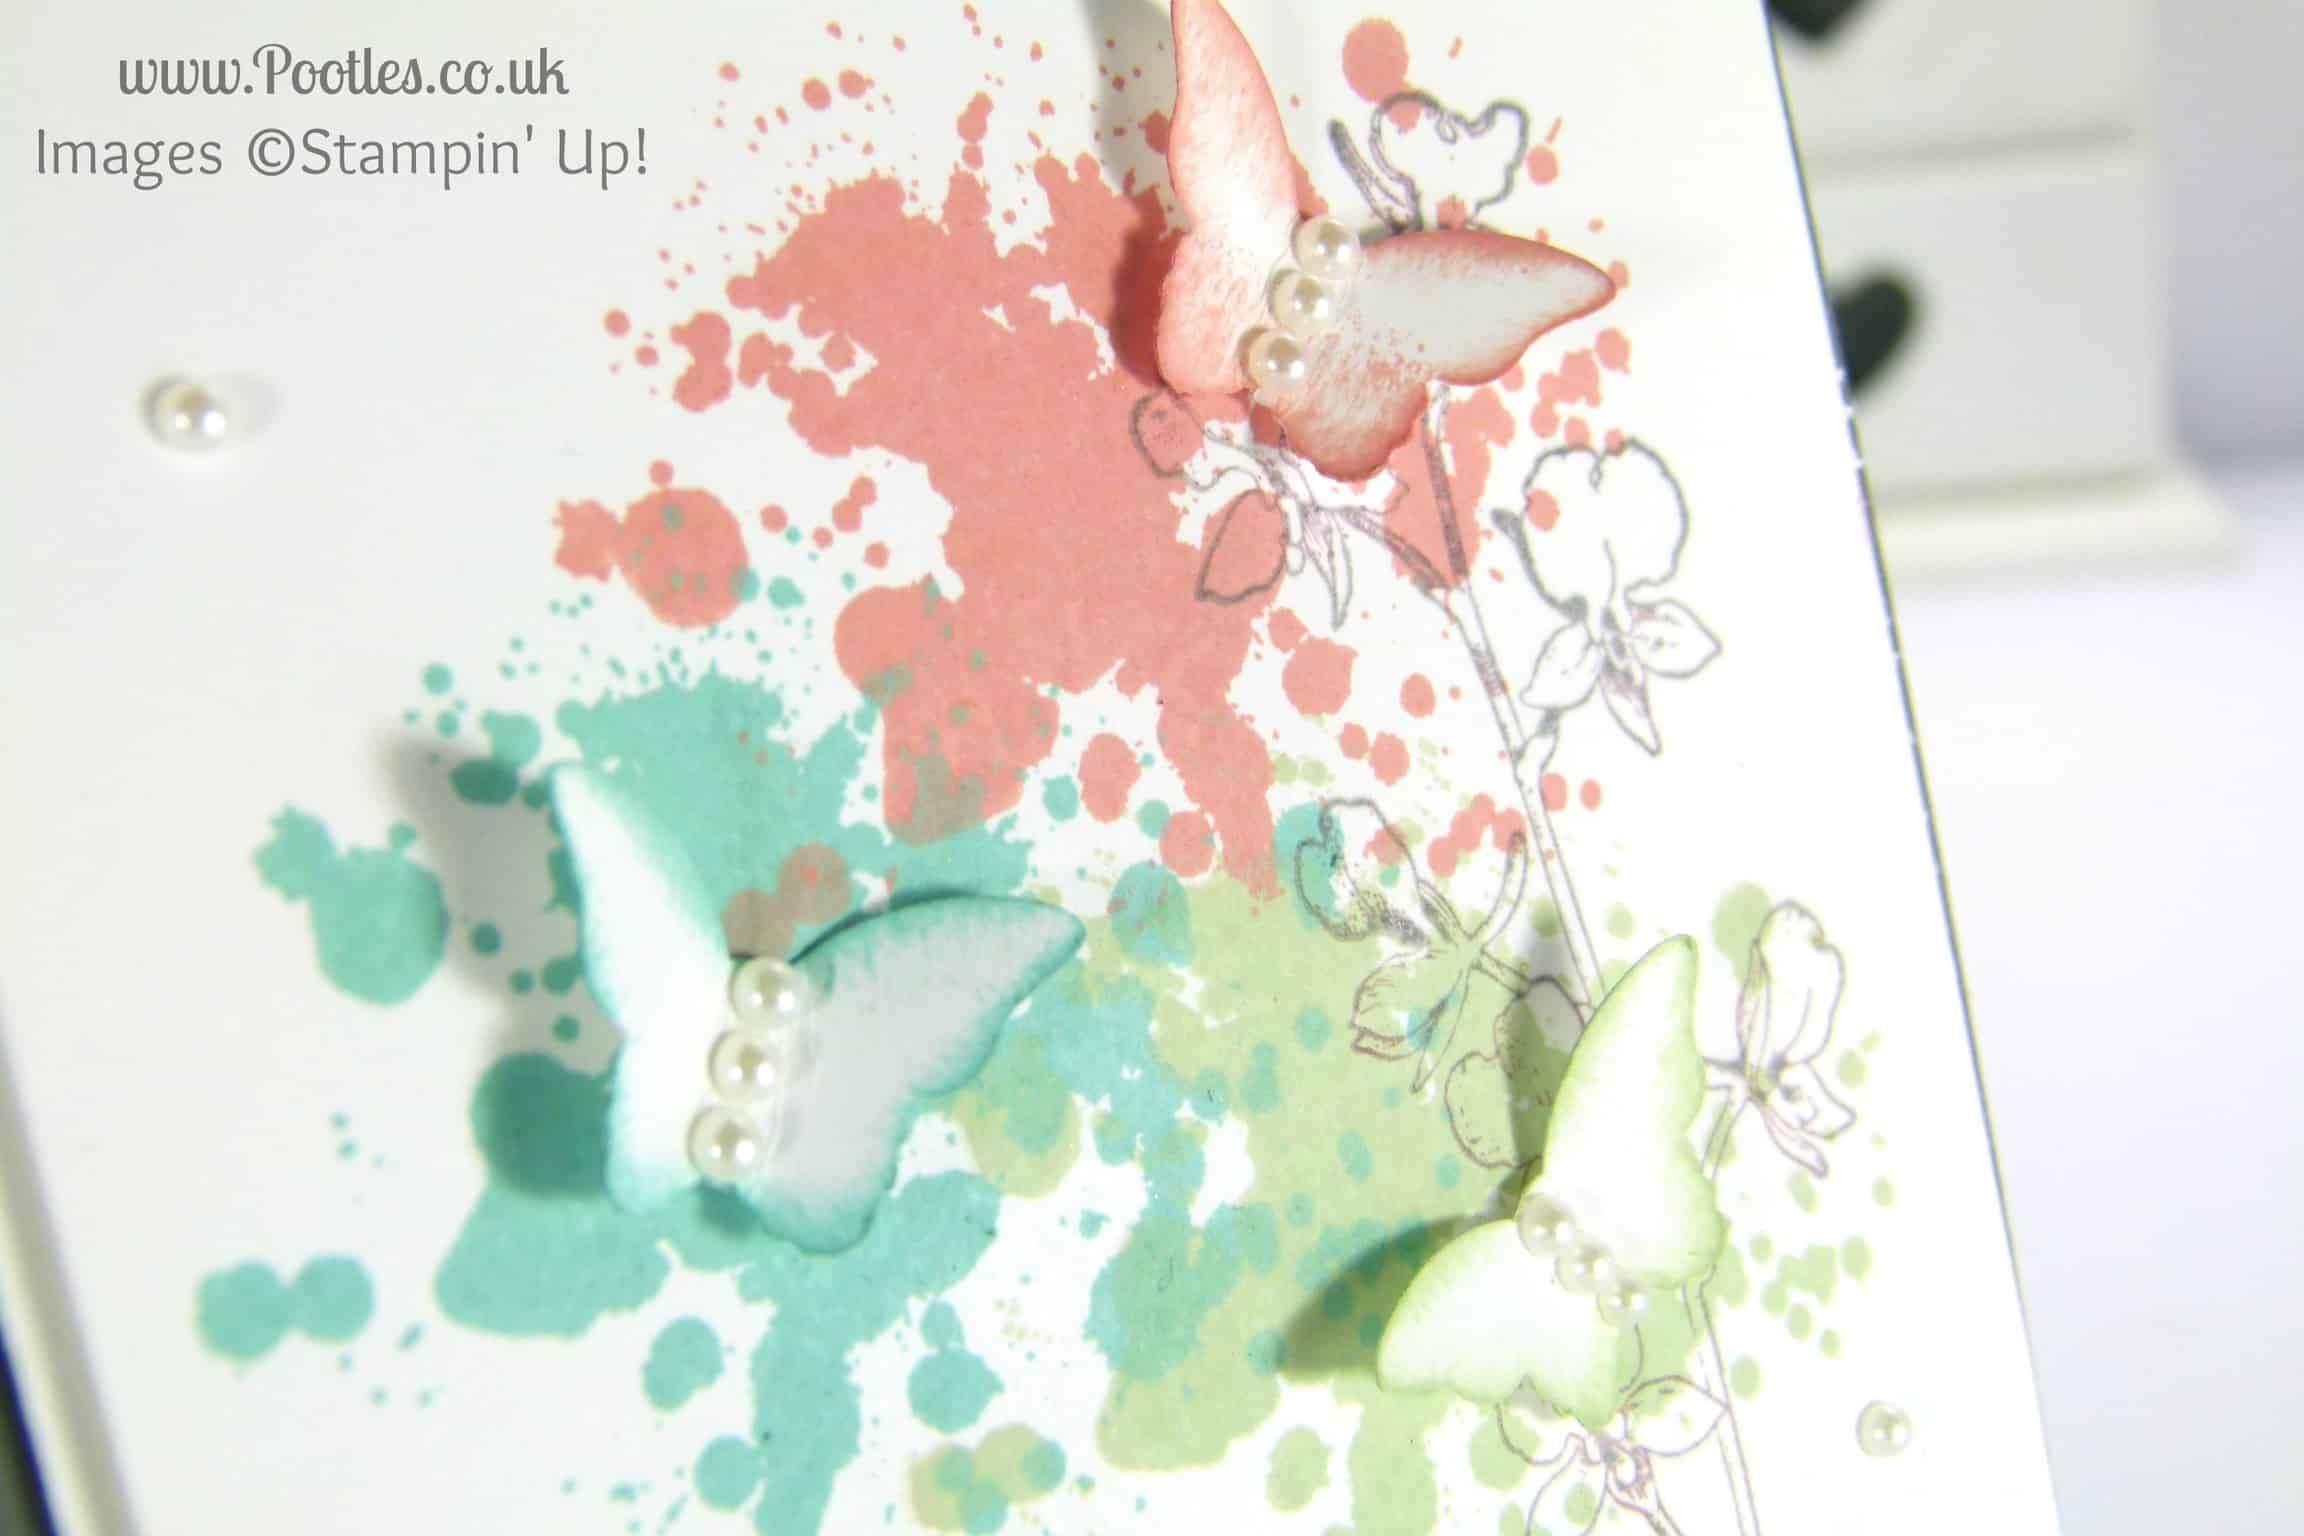 Stampin' Up! UK Independent Demonstrator Pootles - Gorgeous Grunge Bitty Butterflies Card Tutorial close up stamping